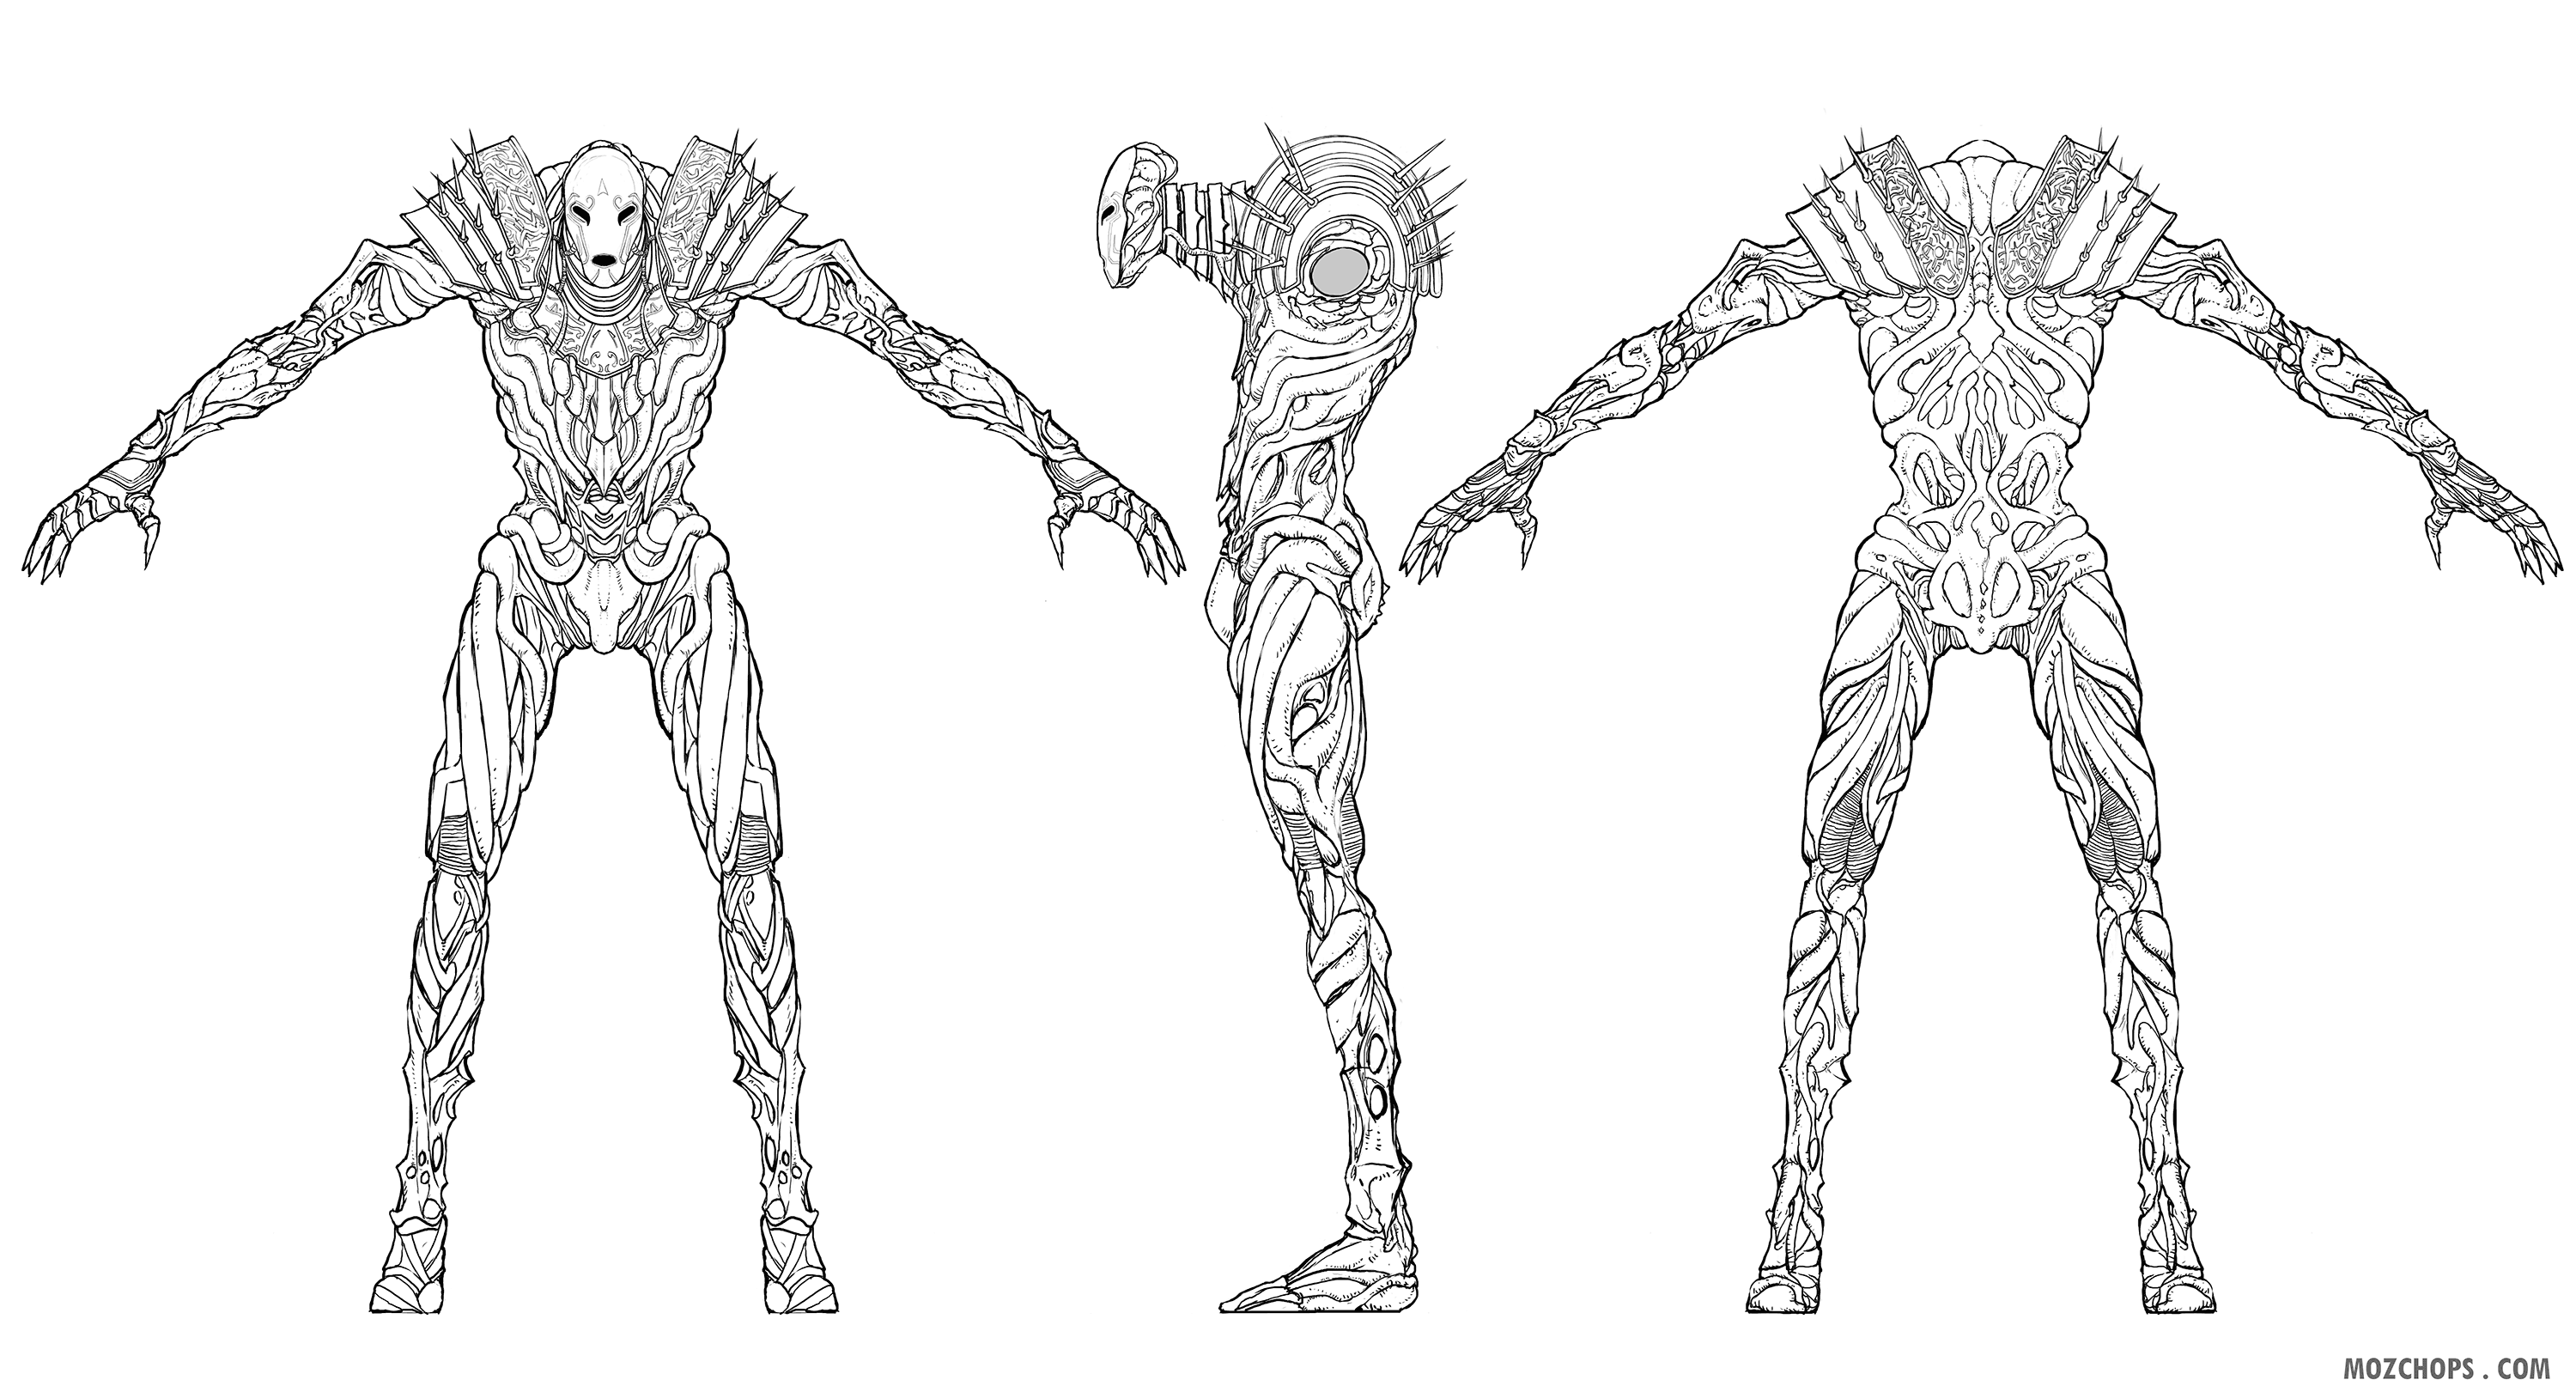 strider-elite-turnaround-10